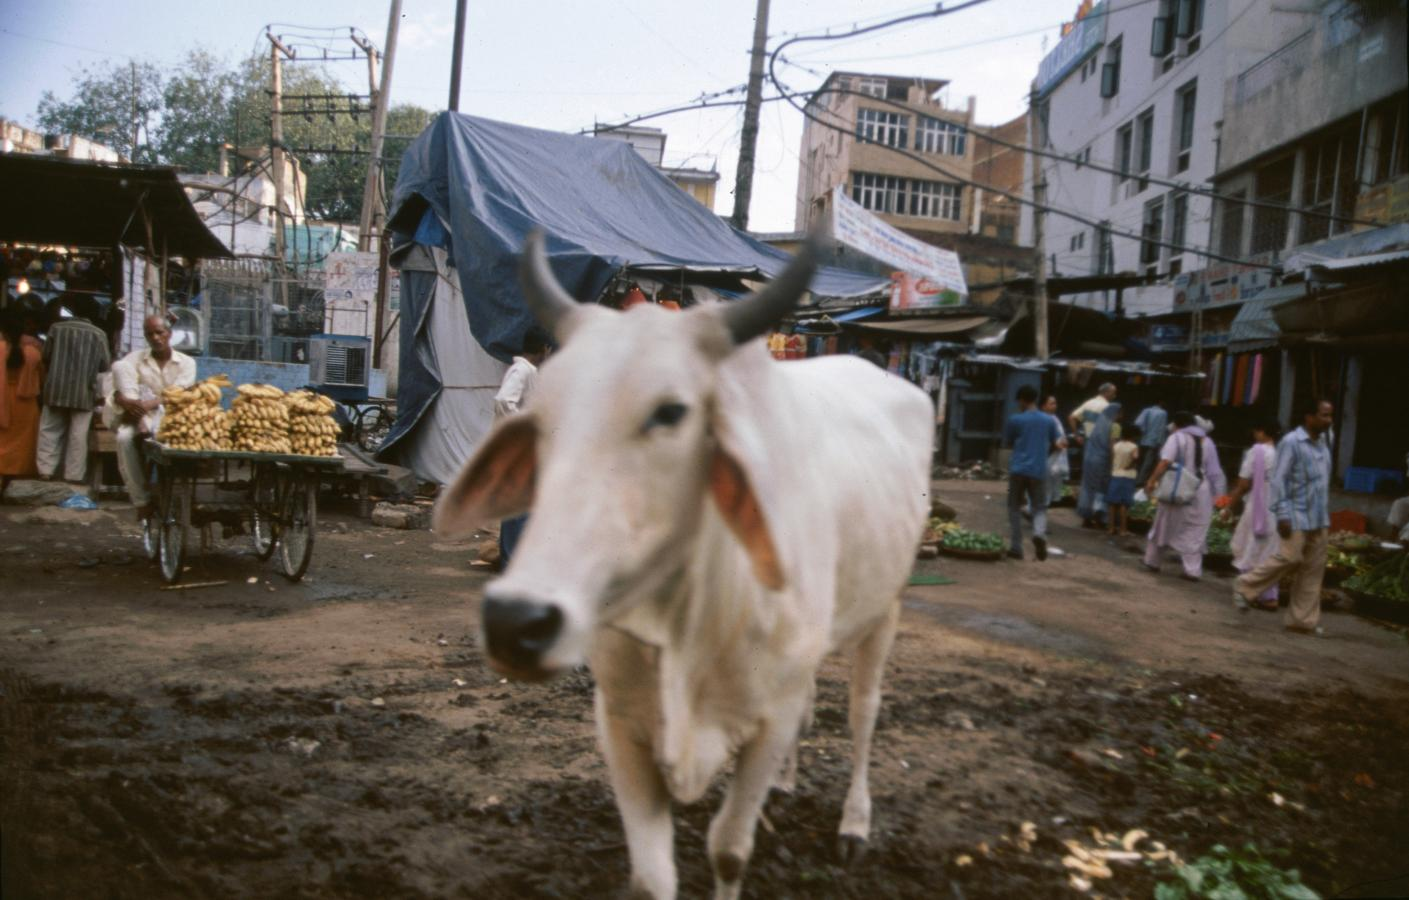 cow-in-the-street-delhi-2003